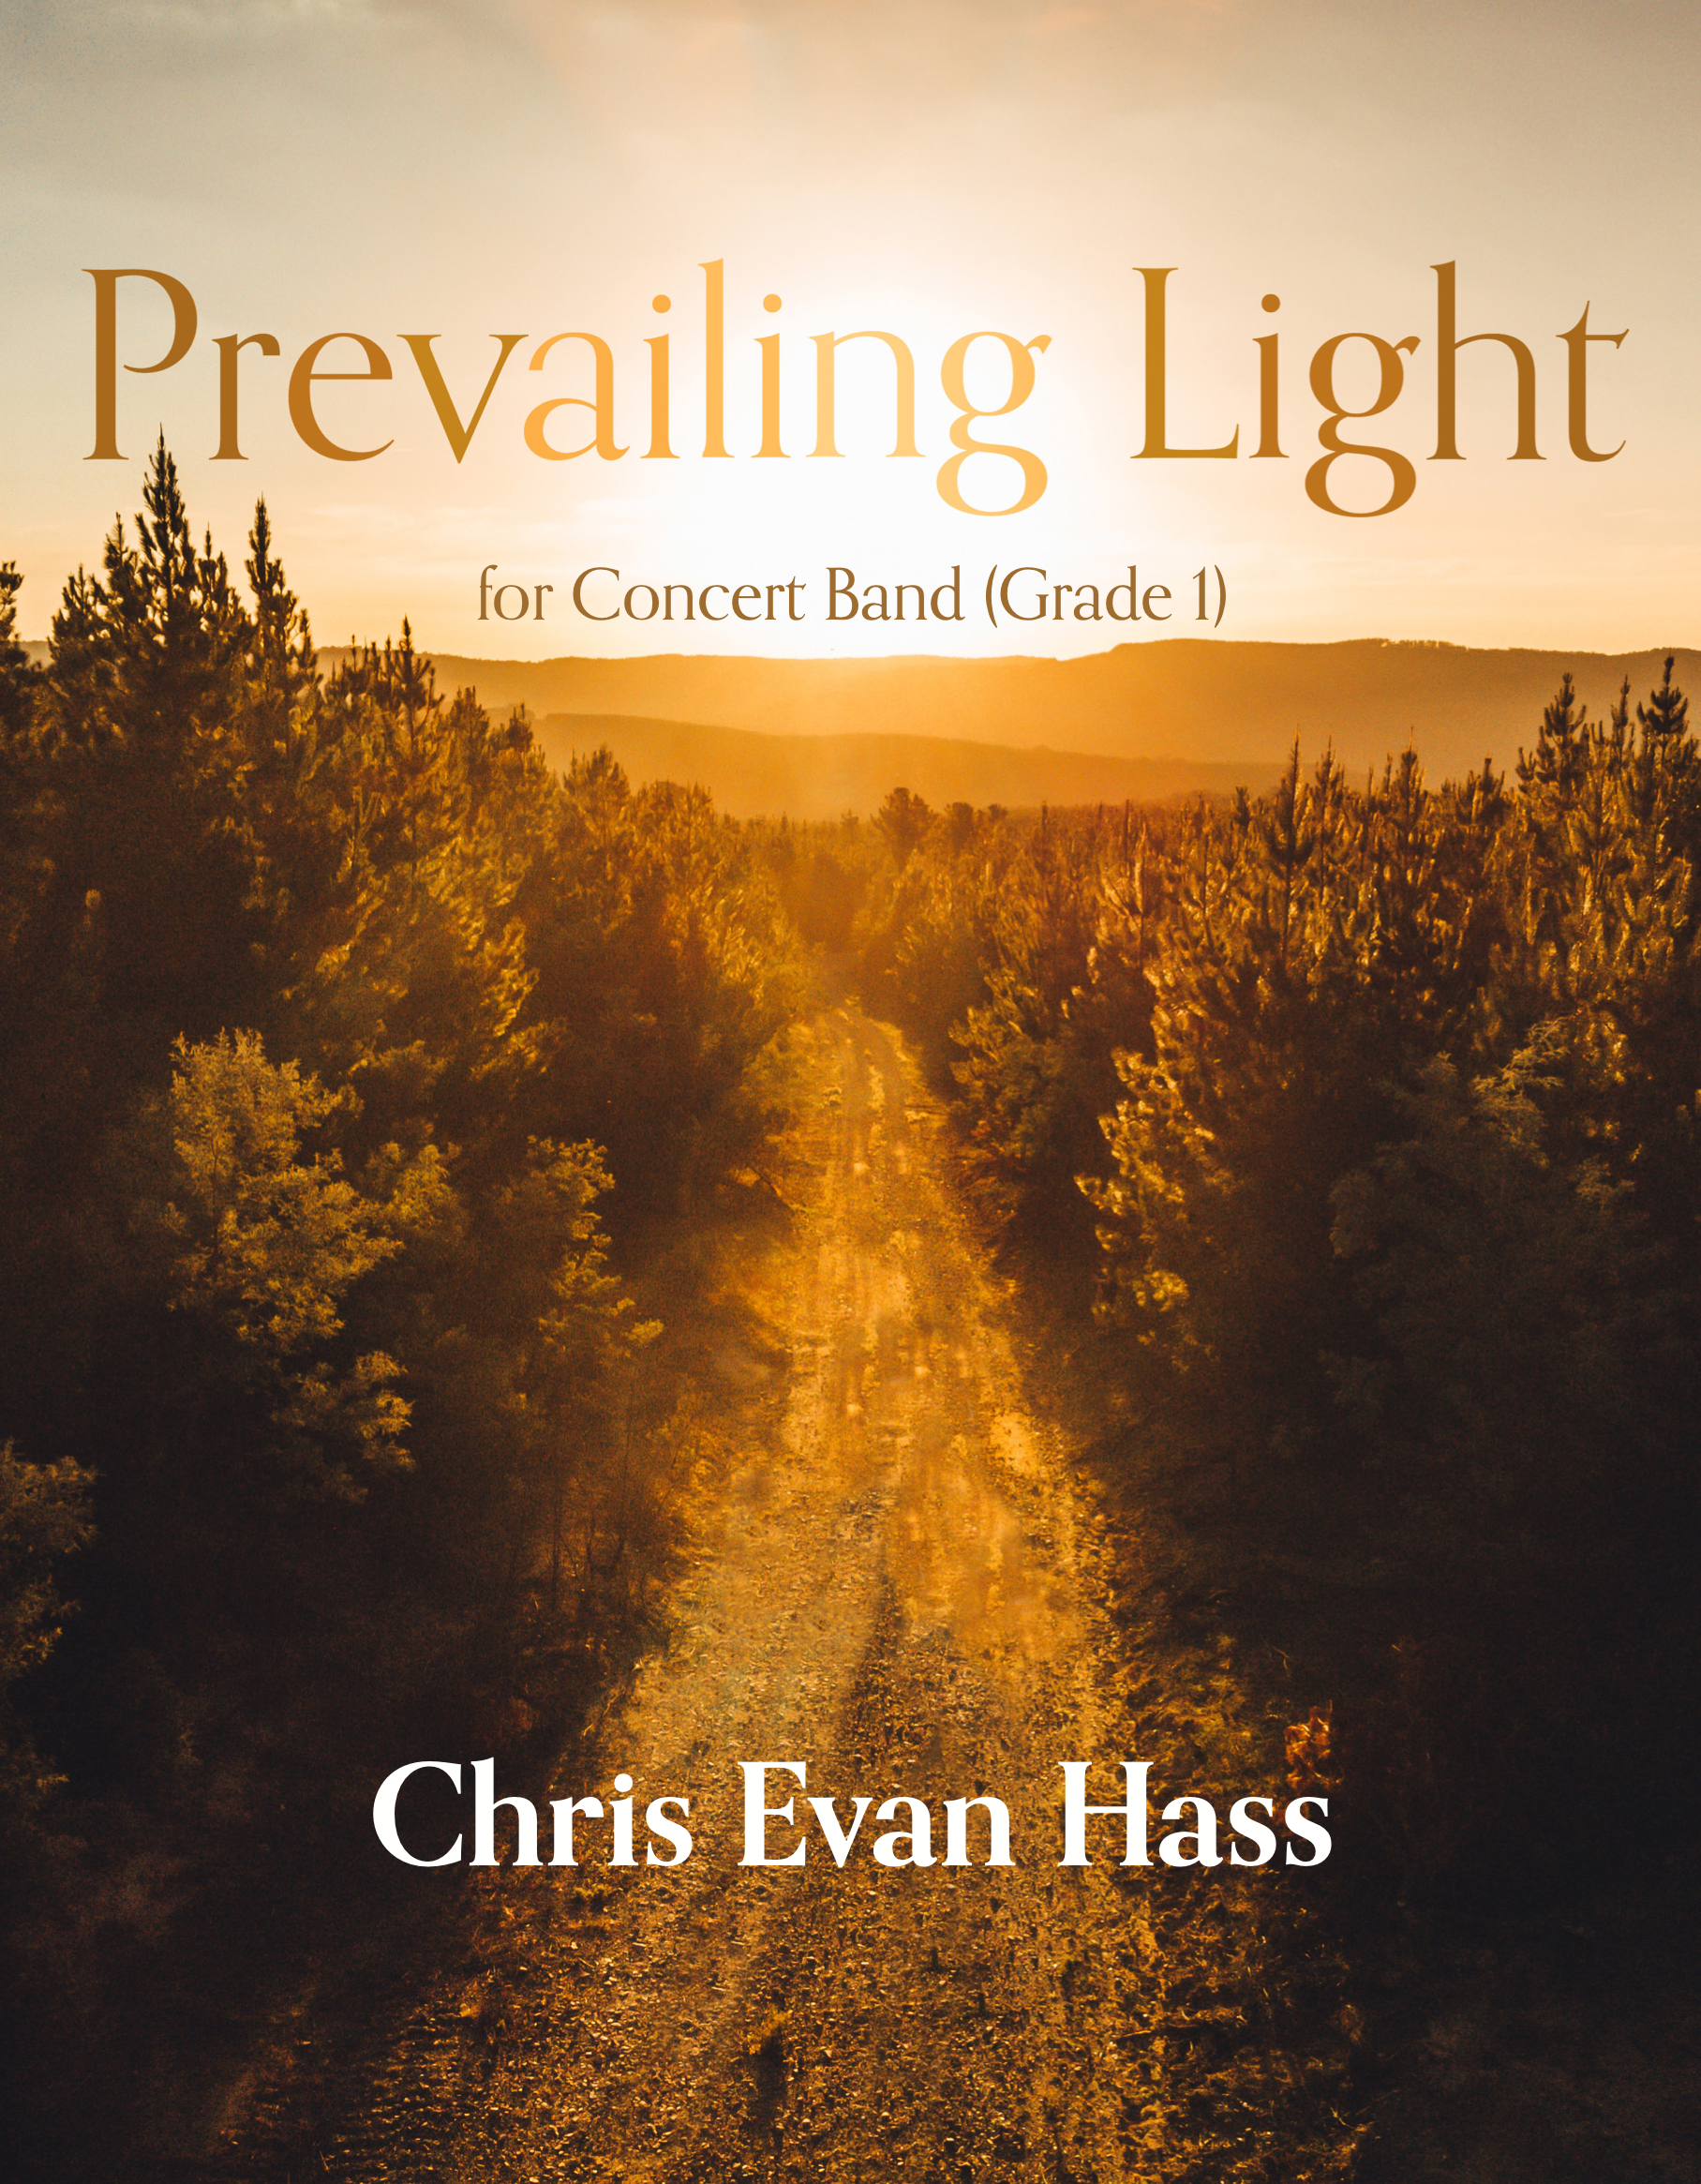 Prevailing Light by Chris Evan Hass